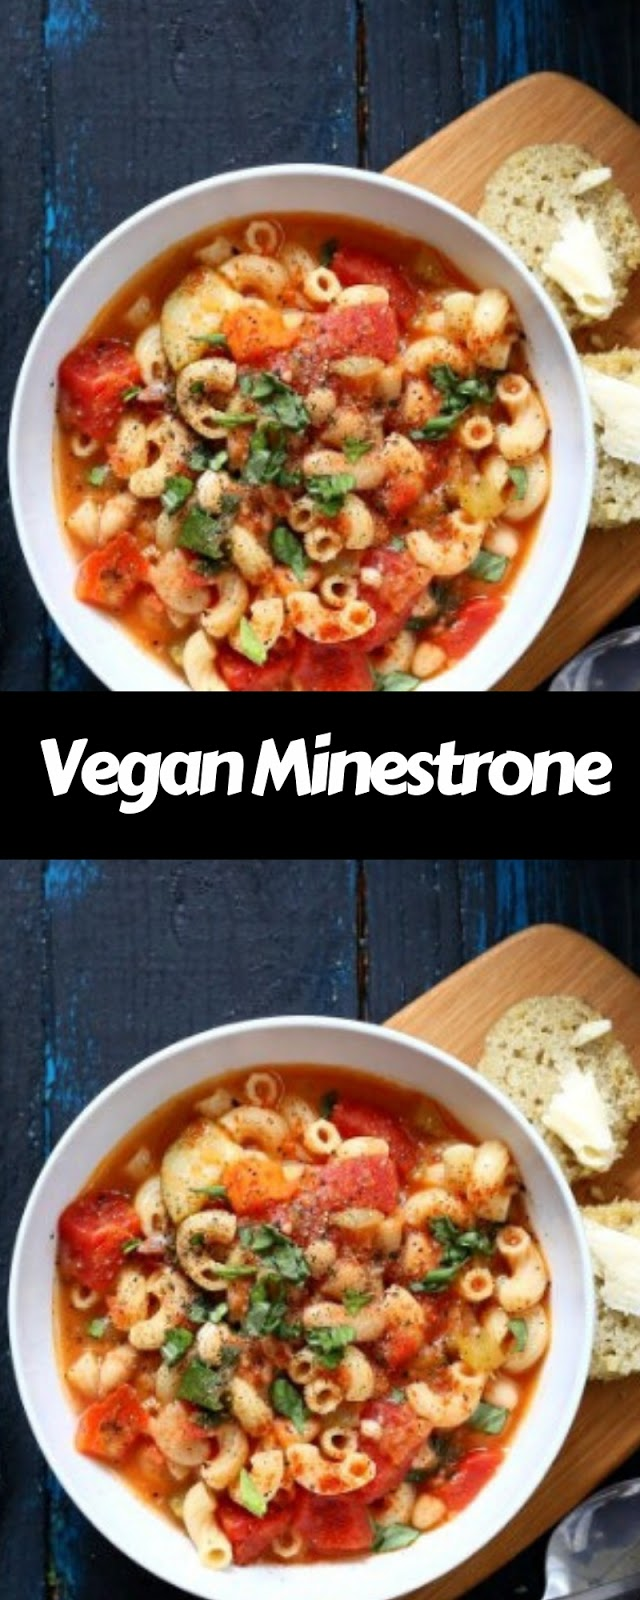 Vegan Minestrone | Veggies Pasta & White Bean Soup